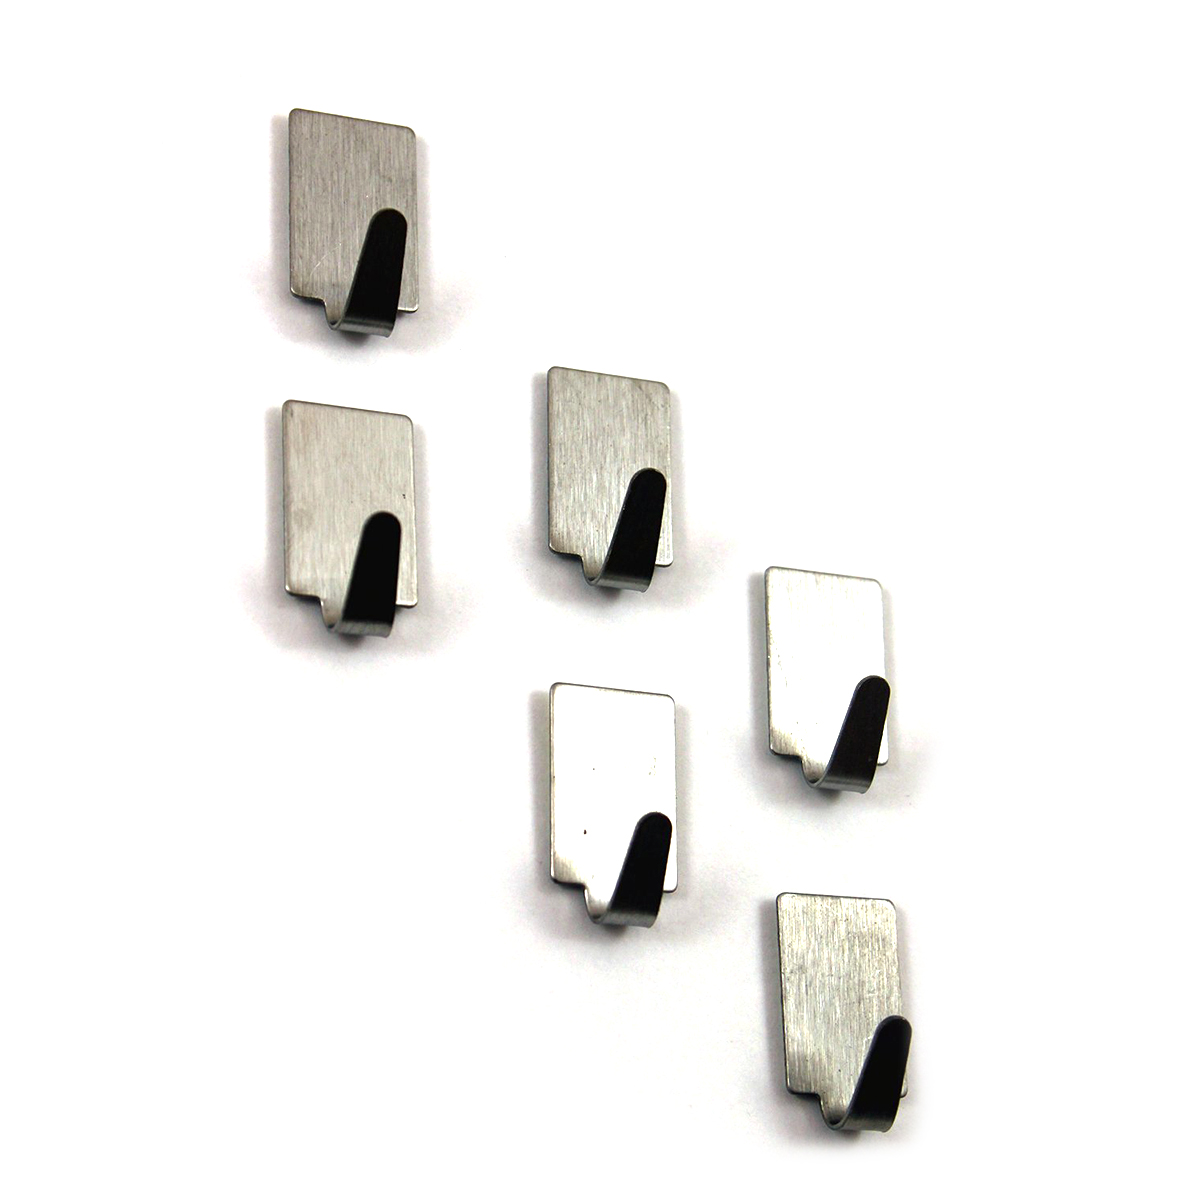 12pcs Adhesive Stainless Steel Towel Hooks Family Robe Hanging Hooks Hats Bag Key Adhesive Wall Hanger for Kitchen Bathroom